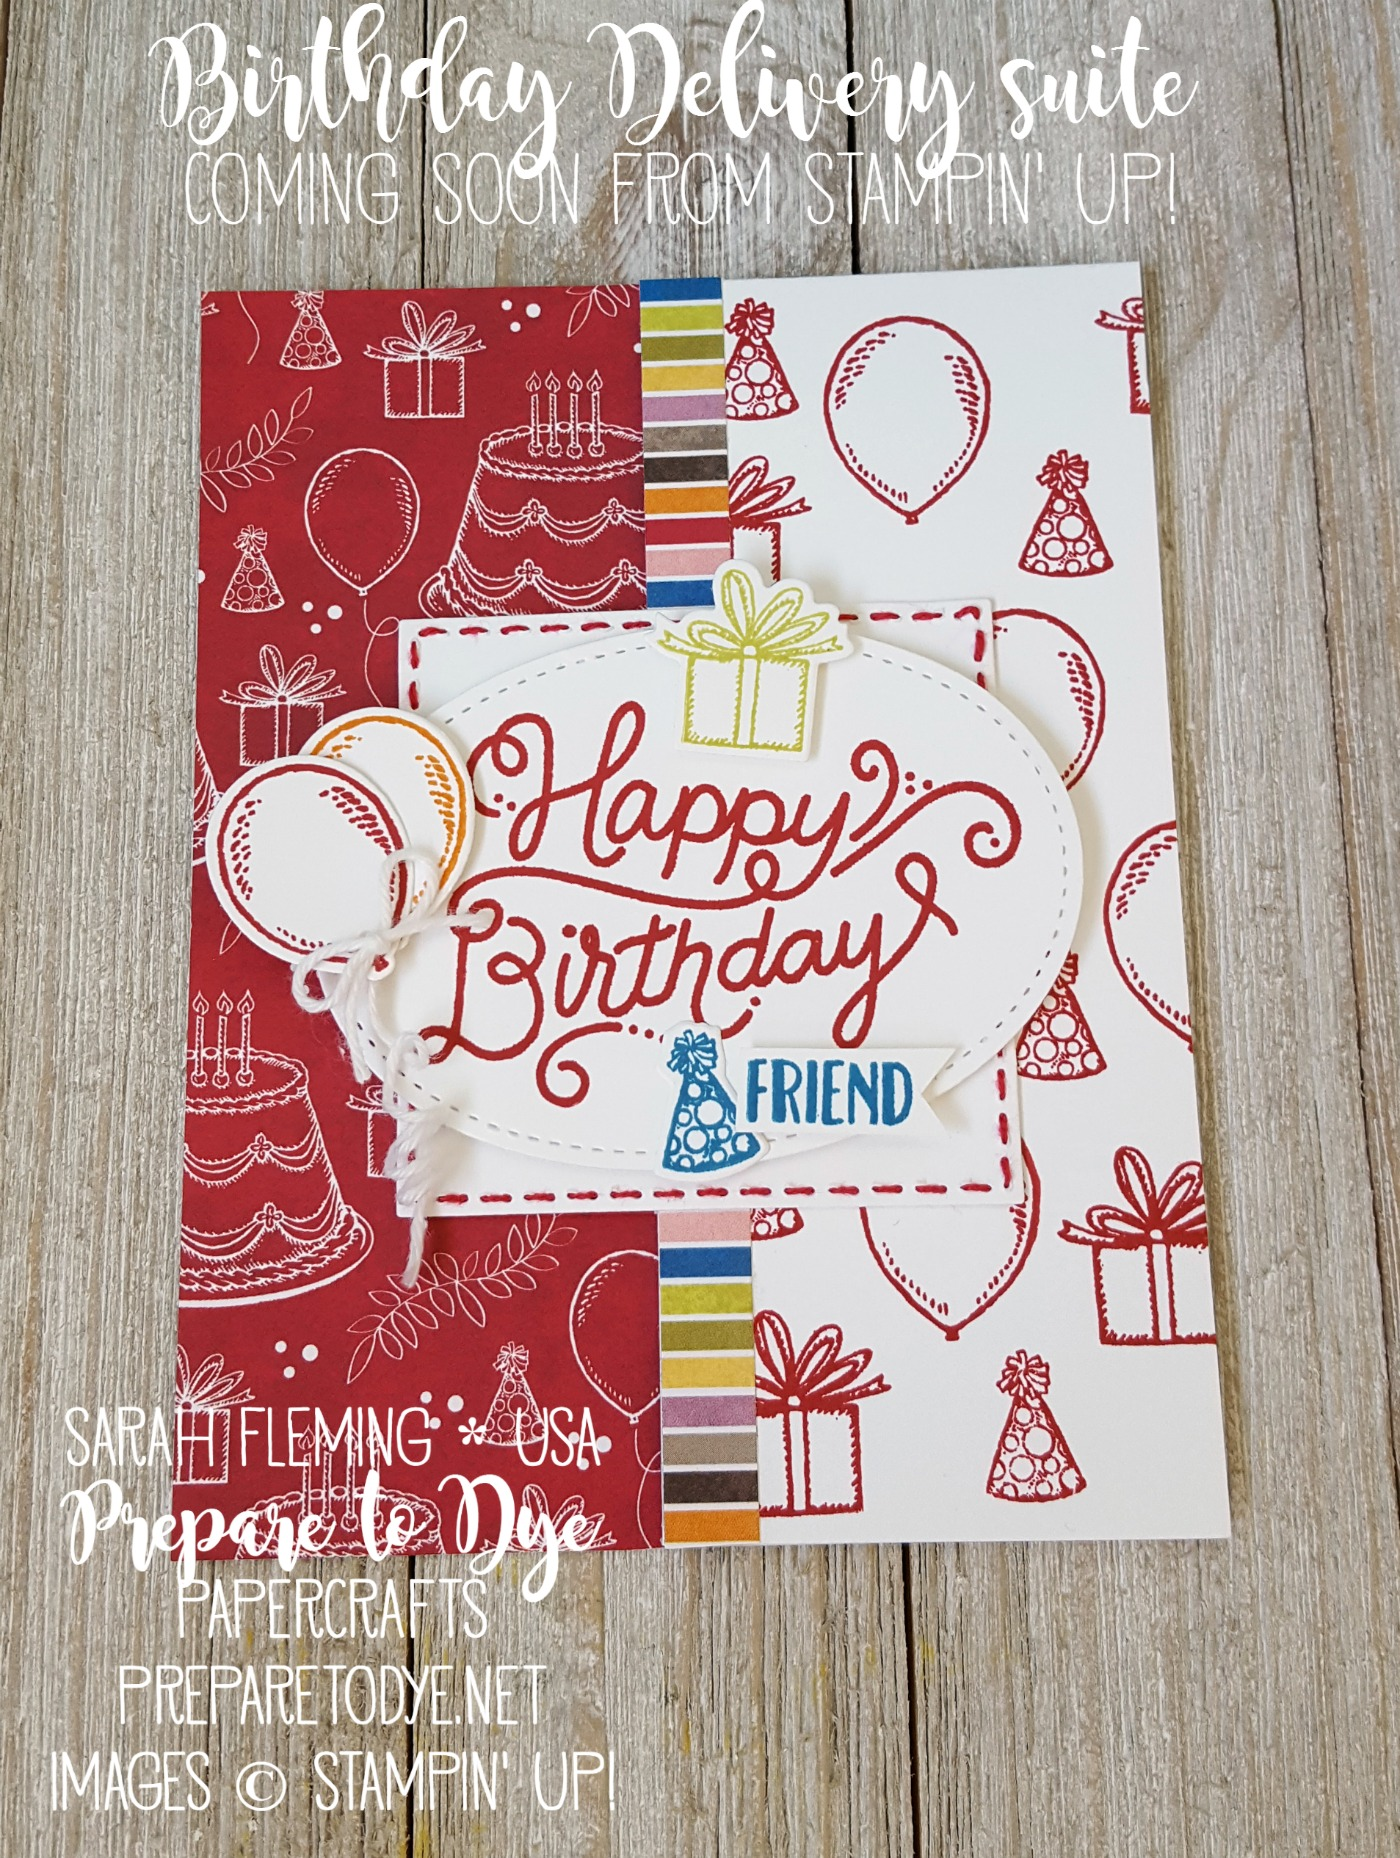 Stampin' Up! Birthday Memories suite stepped up card - Splitcoaststampers Creative Crew - Stitched Shapes framelits - Sarah Fleming - Prepare to Dye Papercrafts